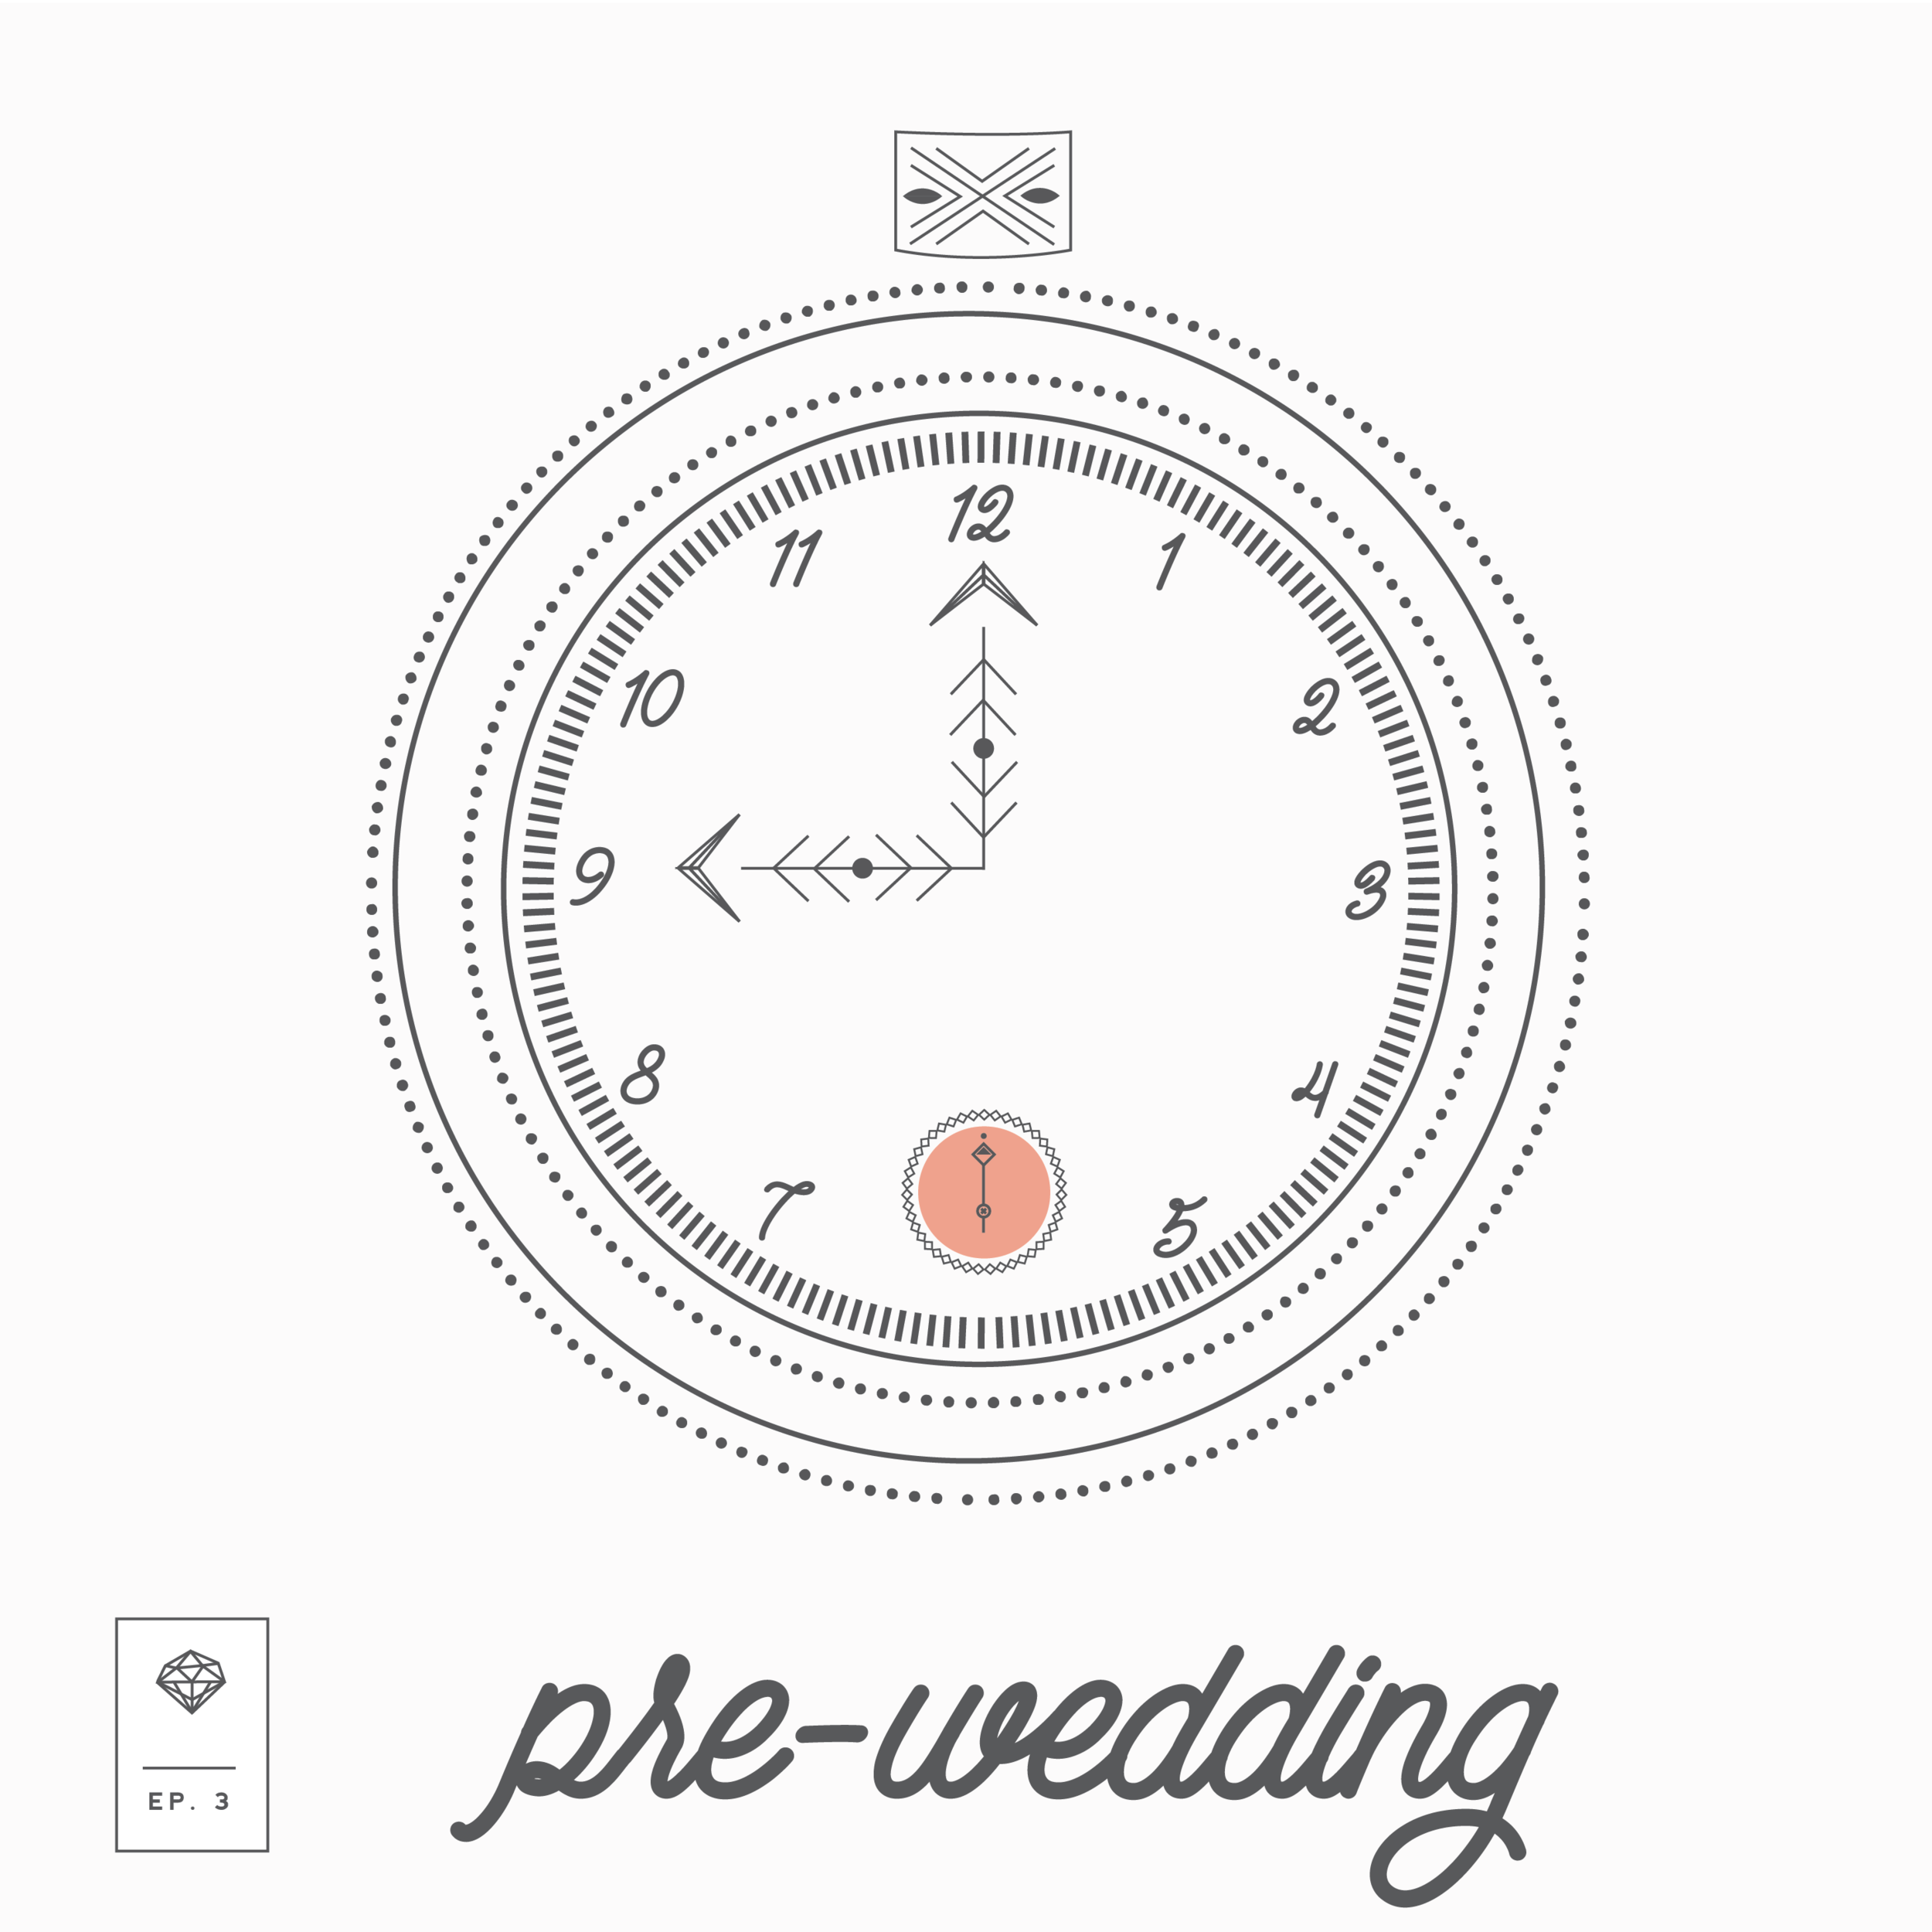 engaged wedding planning worries-01.png